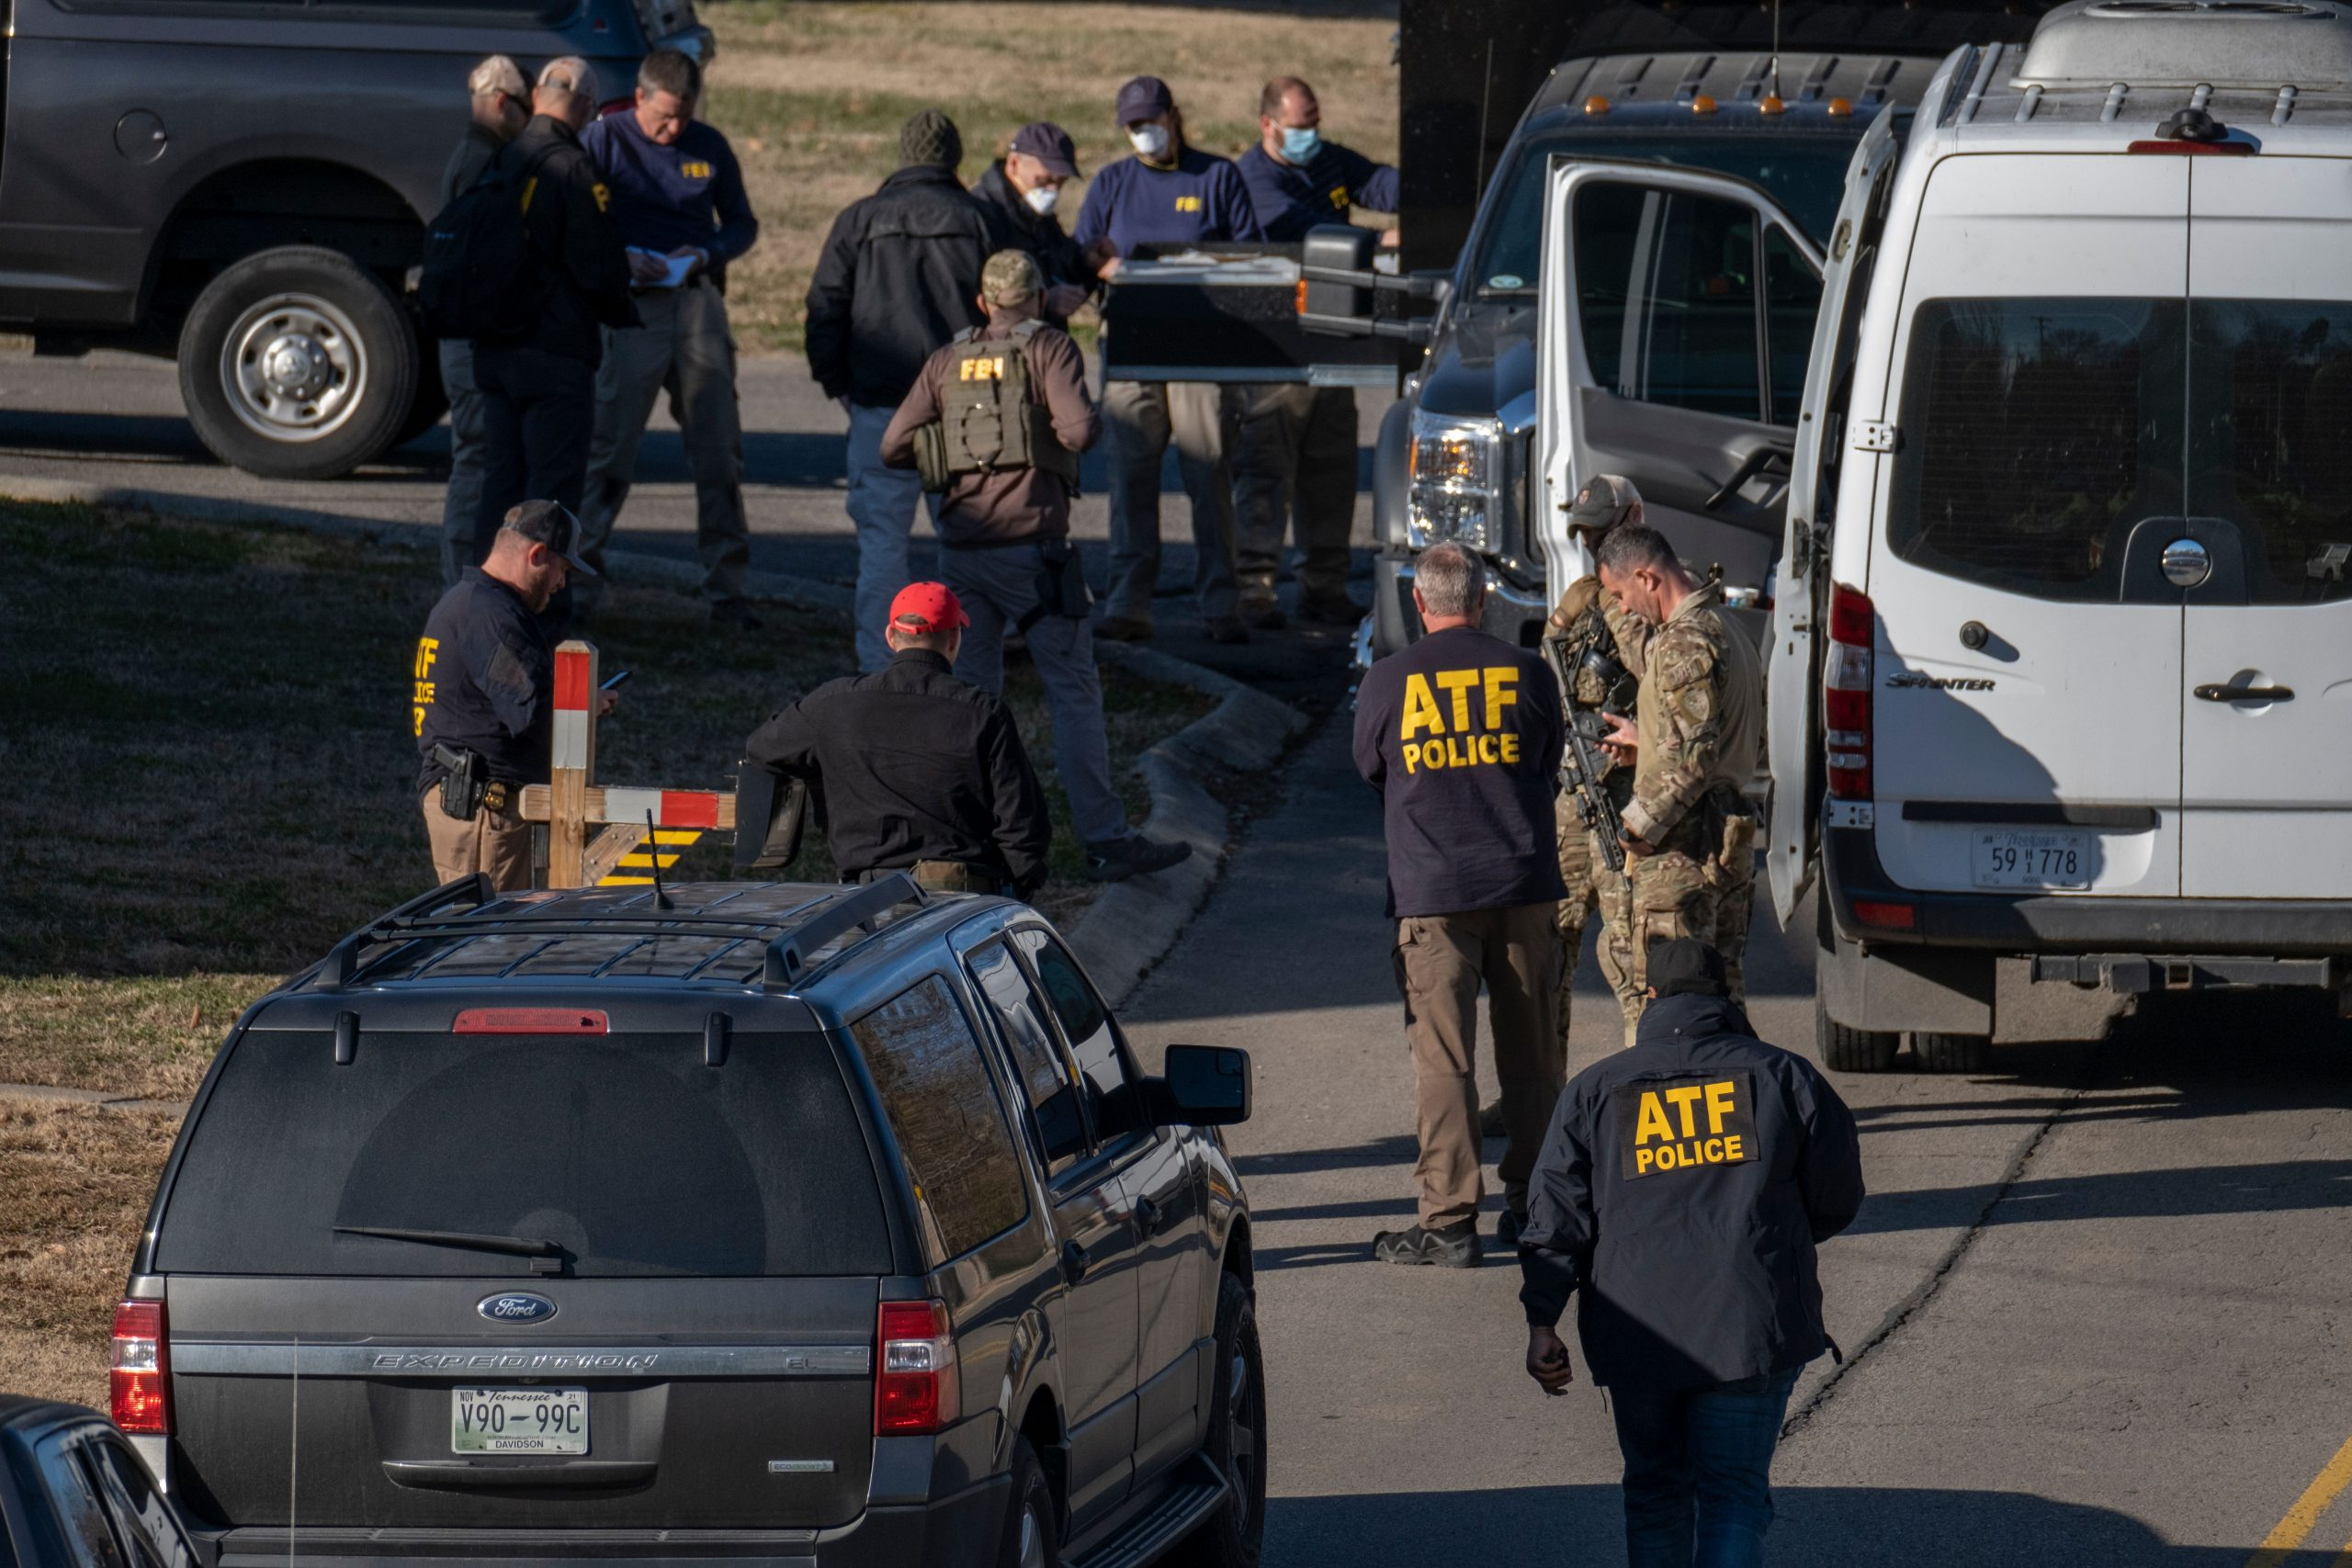 Agents from the FBI and ATF converge at a residence in South Nashville looking for evidence in the Christmas Day RV bombing. (Photo: John Partipilo)